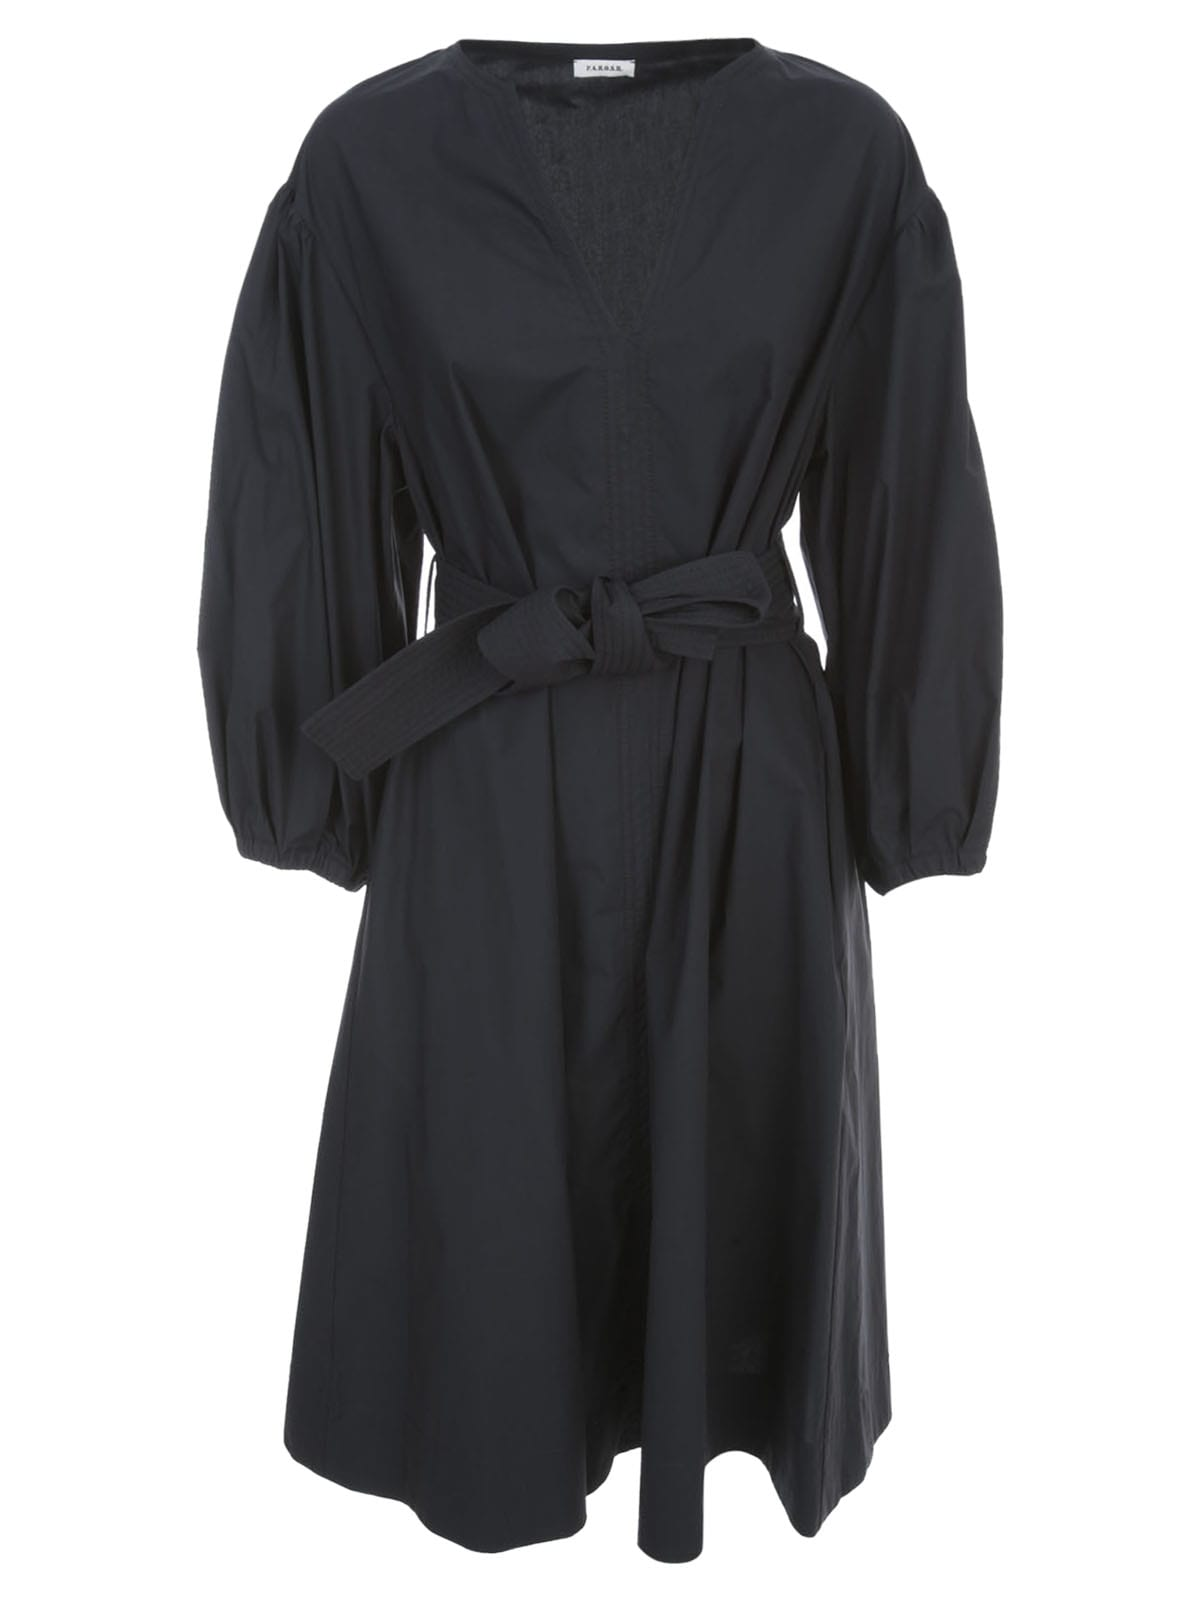 Buy Parosh Cotton Dress 3/4s W/belt online, shop Parosh with free shipping